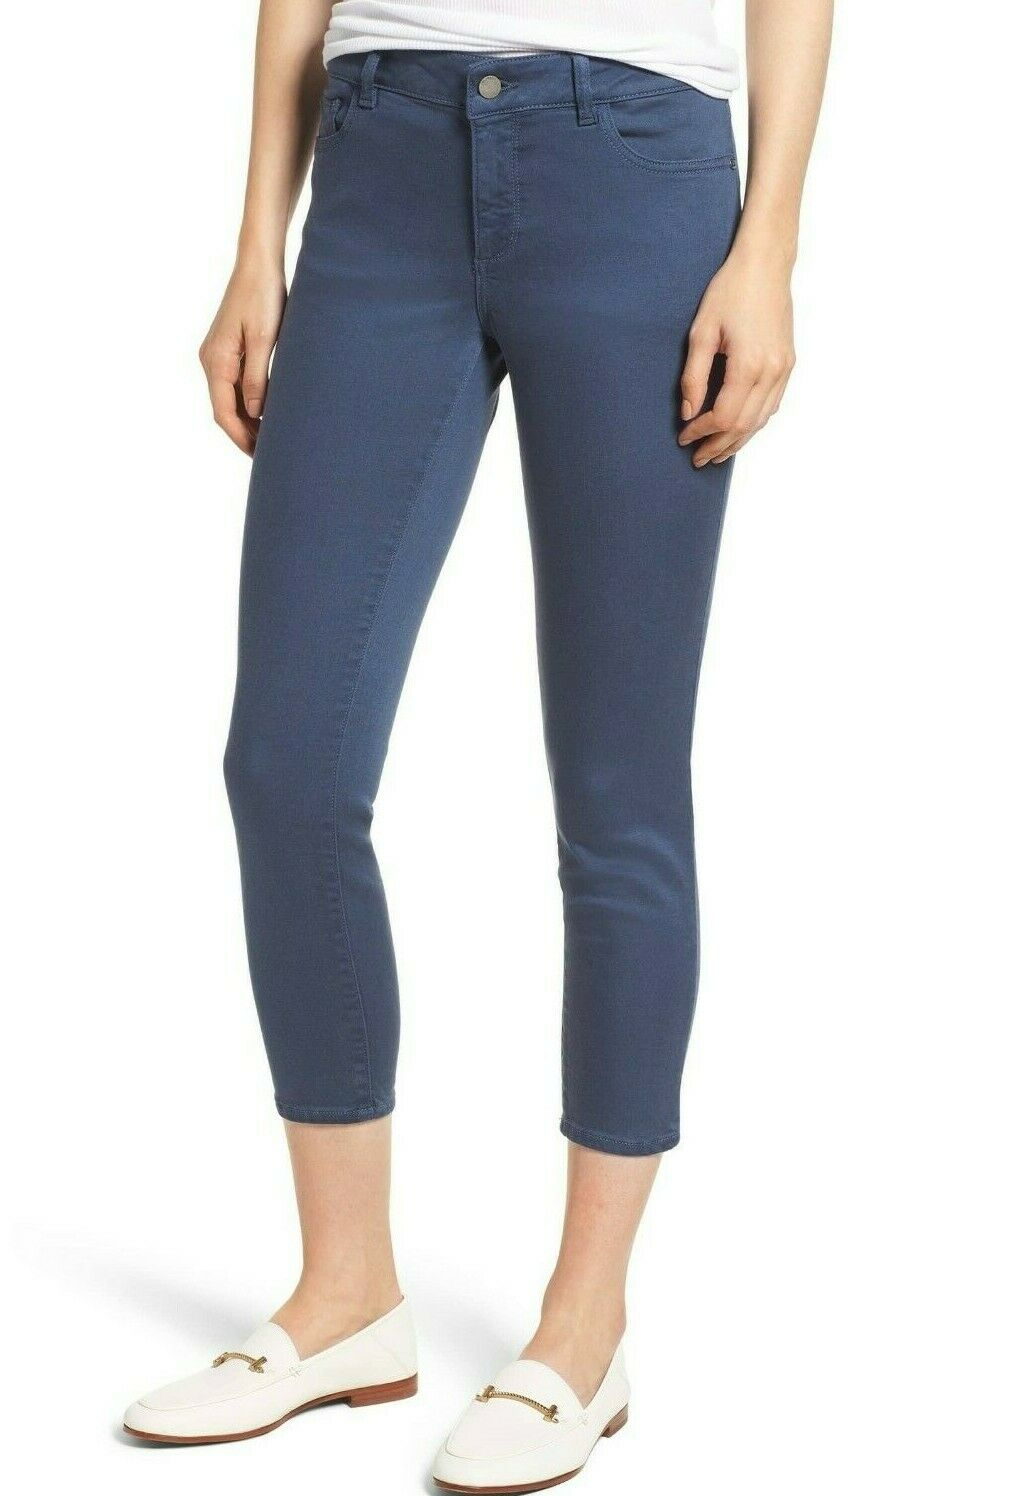 188 NWT DL1961 Sz25 FLORENCE MIDRISE INSTASCULPT CROPPED SKINNY JEANS blueEBELL